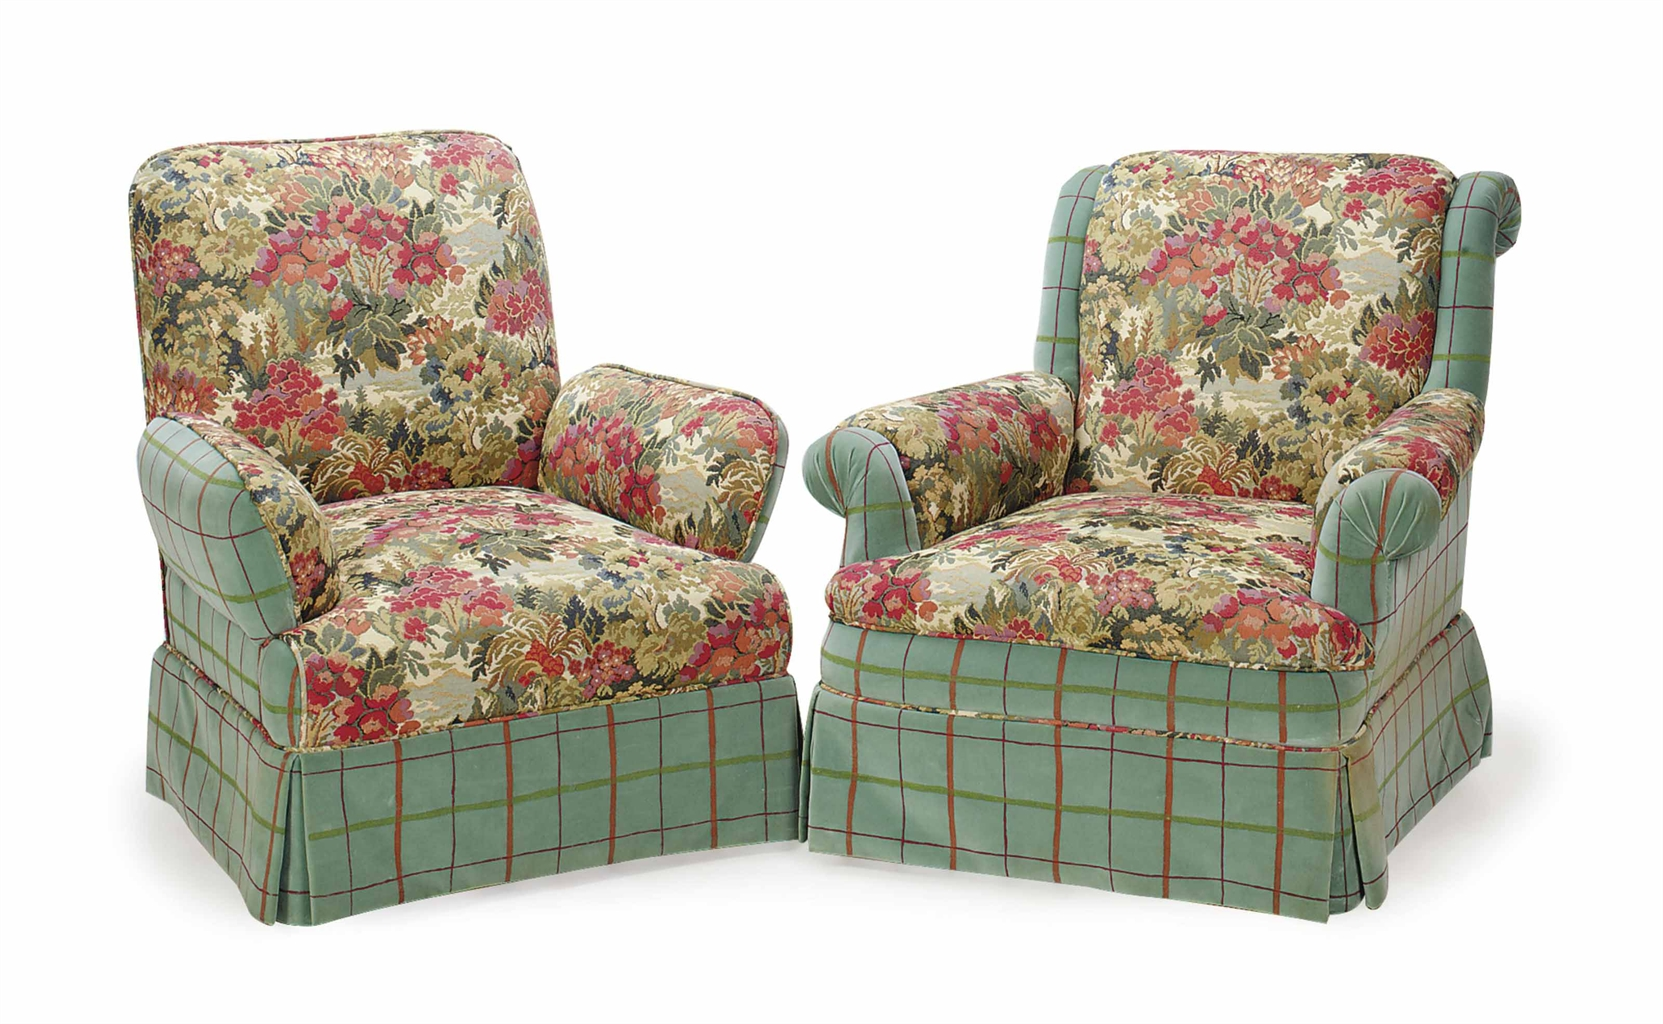 floral upholstered chair bedroom cozy a pair of plaid and plush club chairs